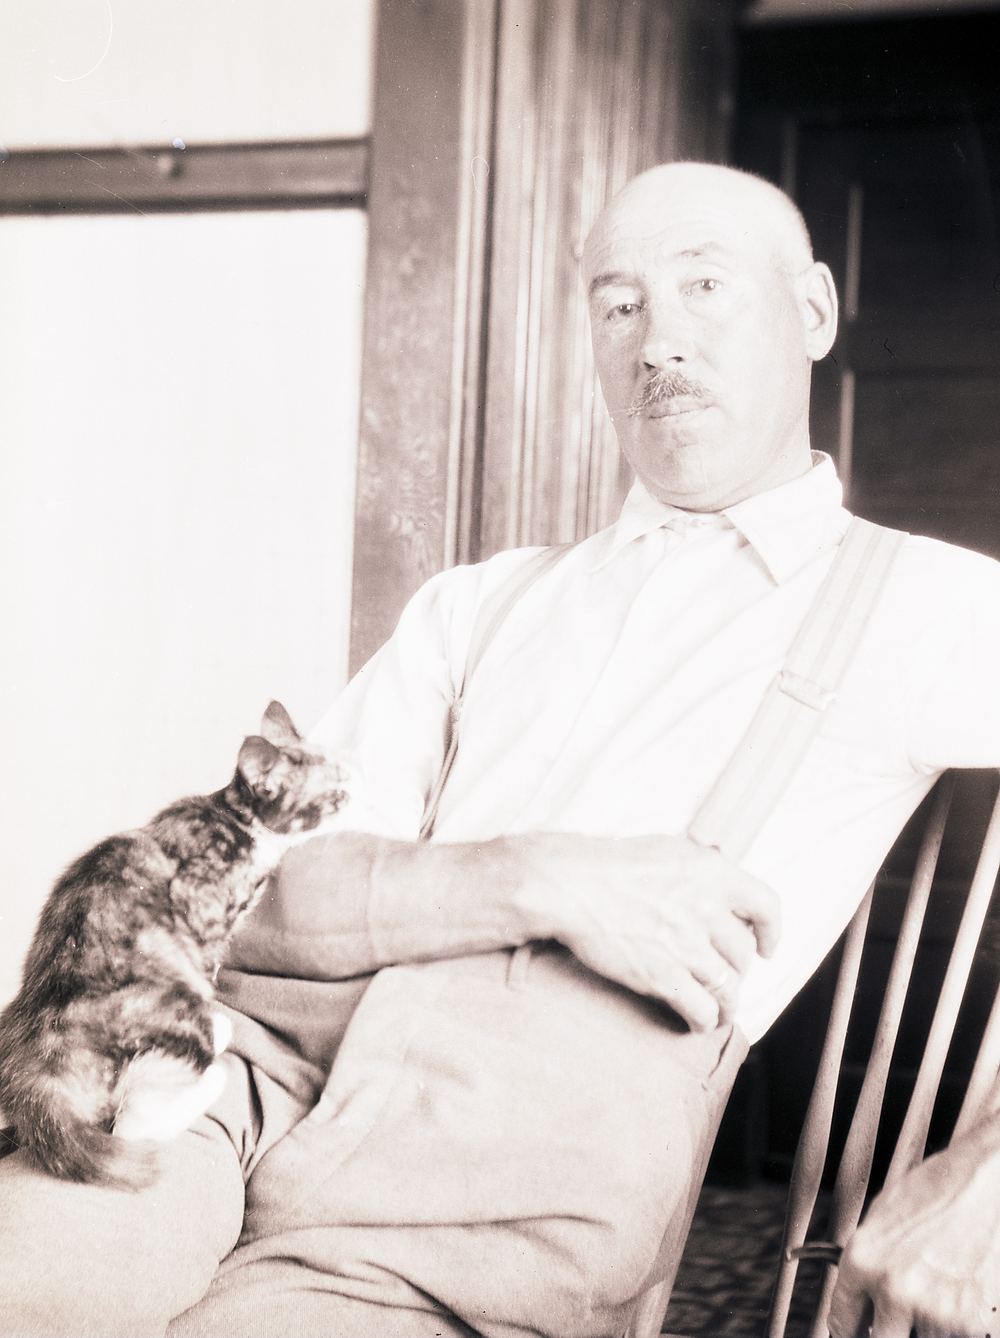 Man with cat on lap.